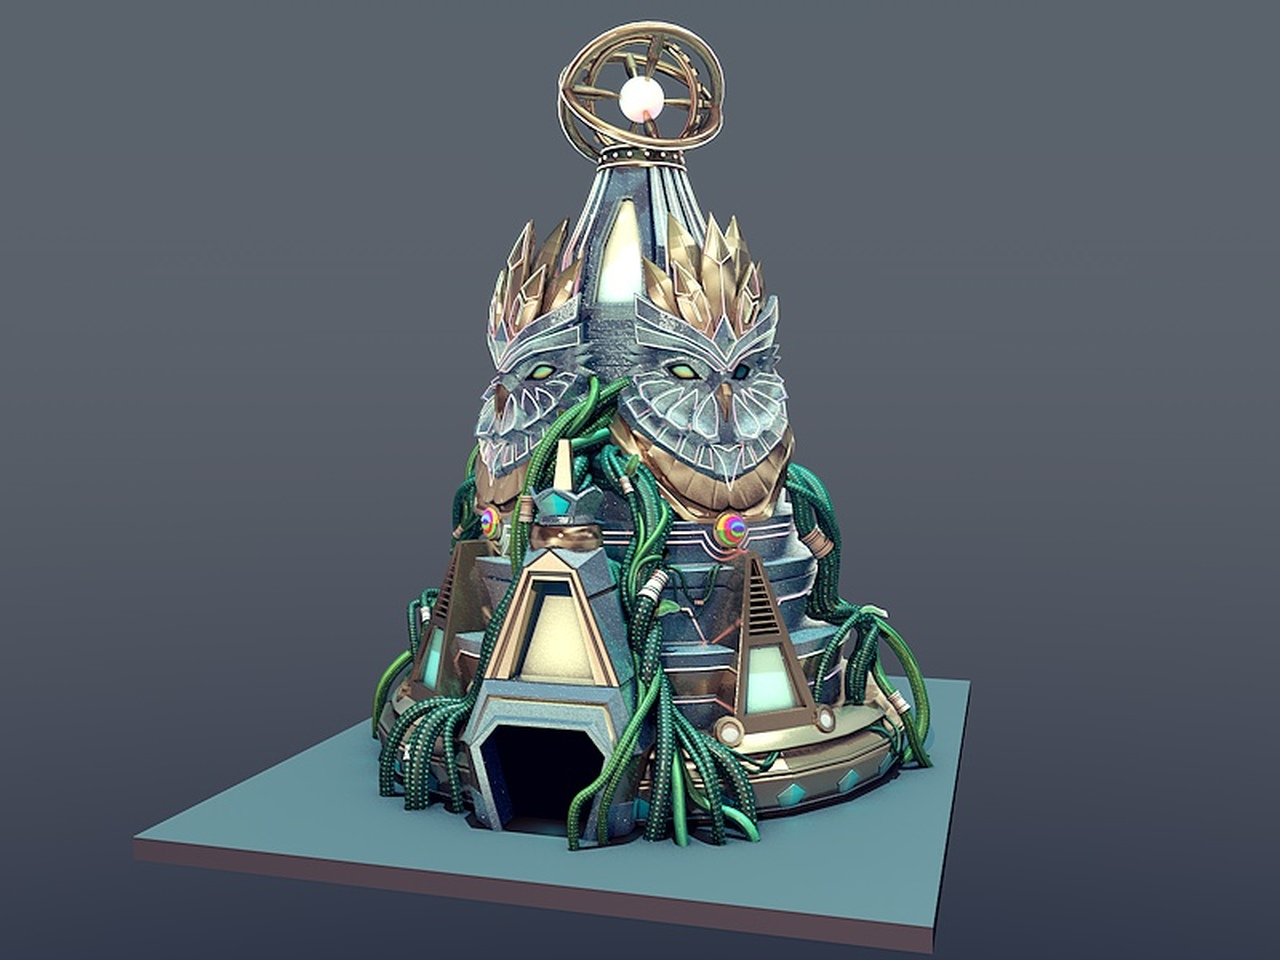 Design of the centerpieces of Kinetic Field stage at EDC 2016